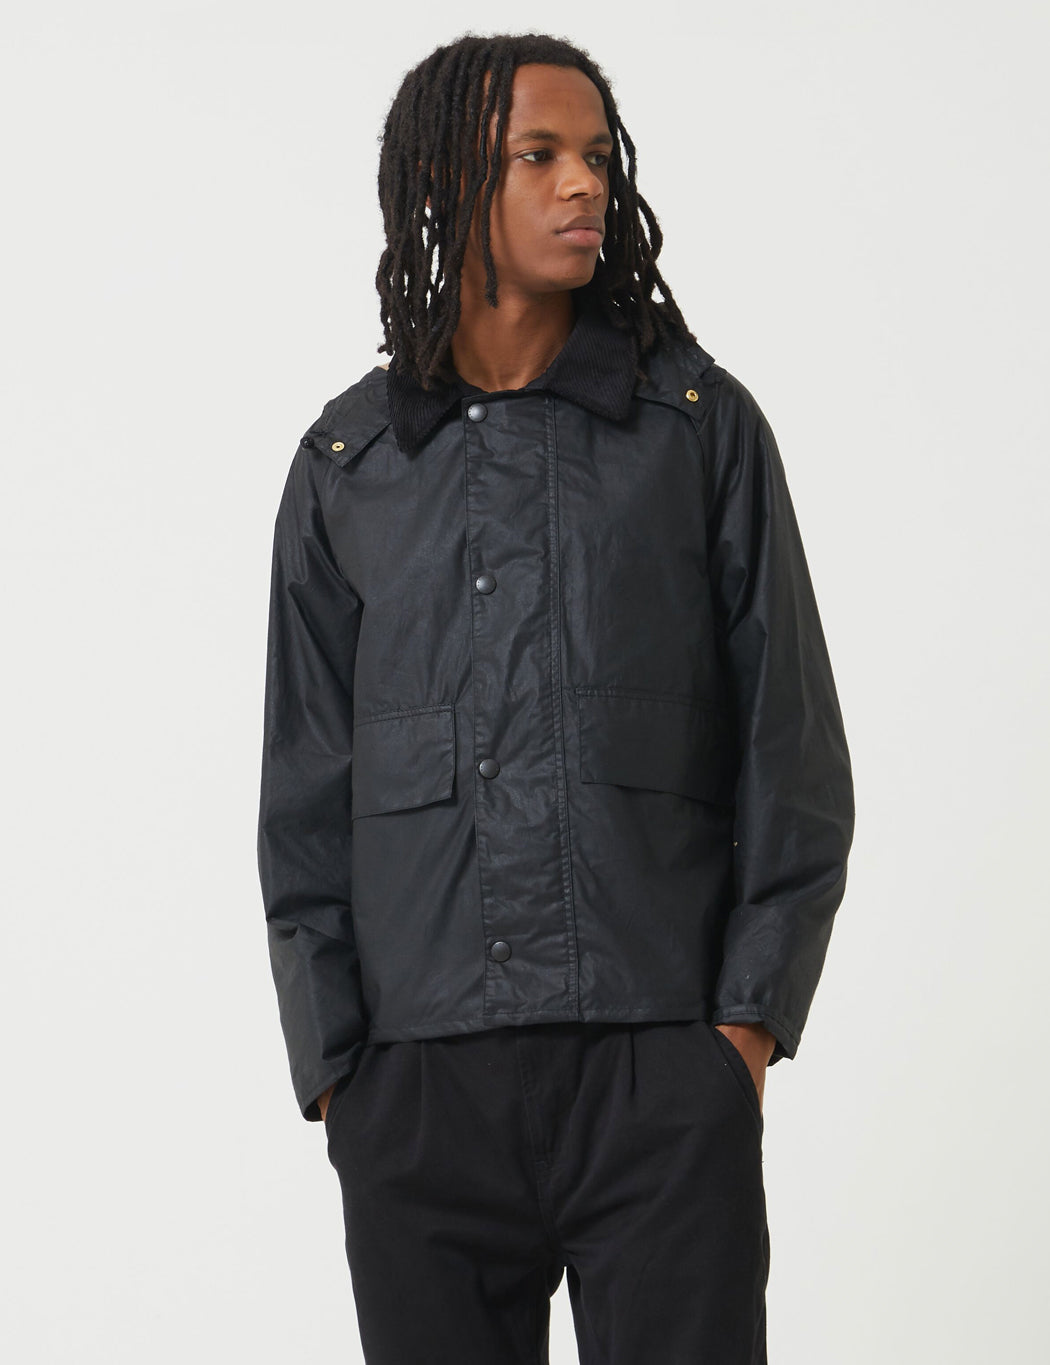 Barbour x Margaret Howell Spey Jacket (Wax) - Black | URBAN EXCESS.